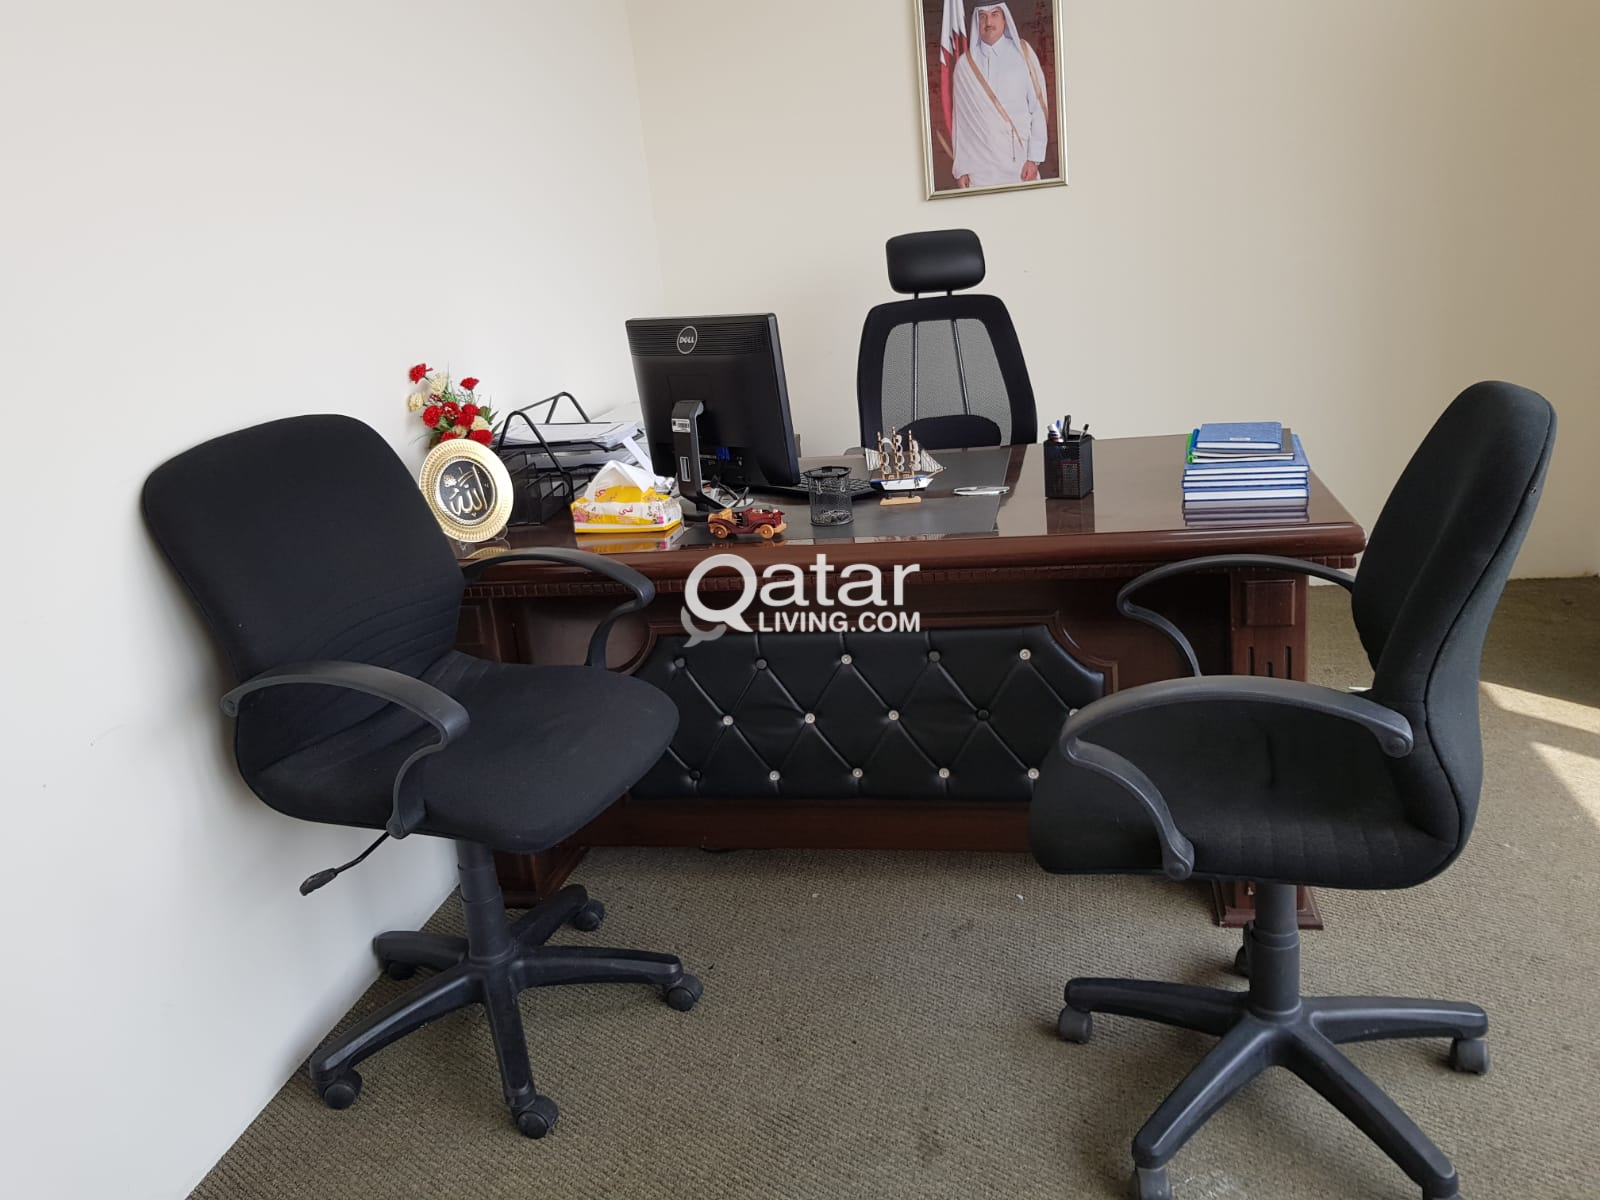 buy popular 1f581 4eff1 used office furniture for sale   Qatar Living